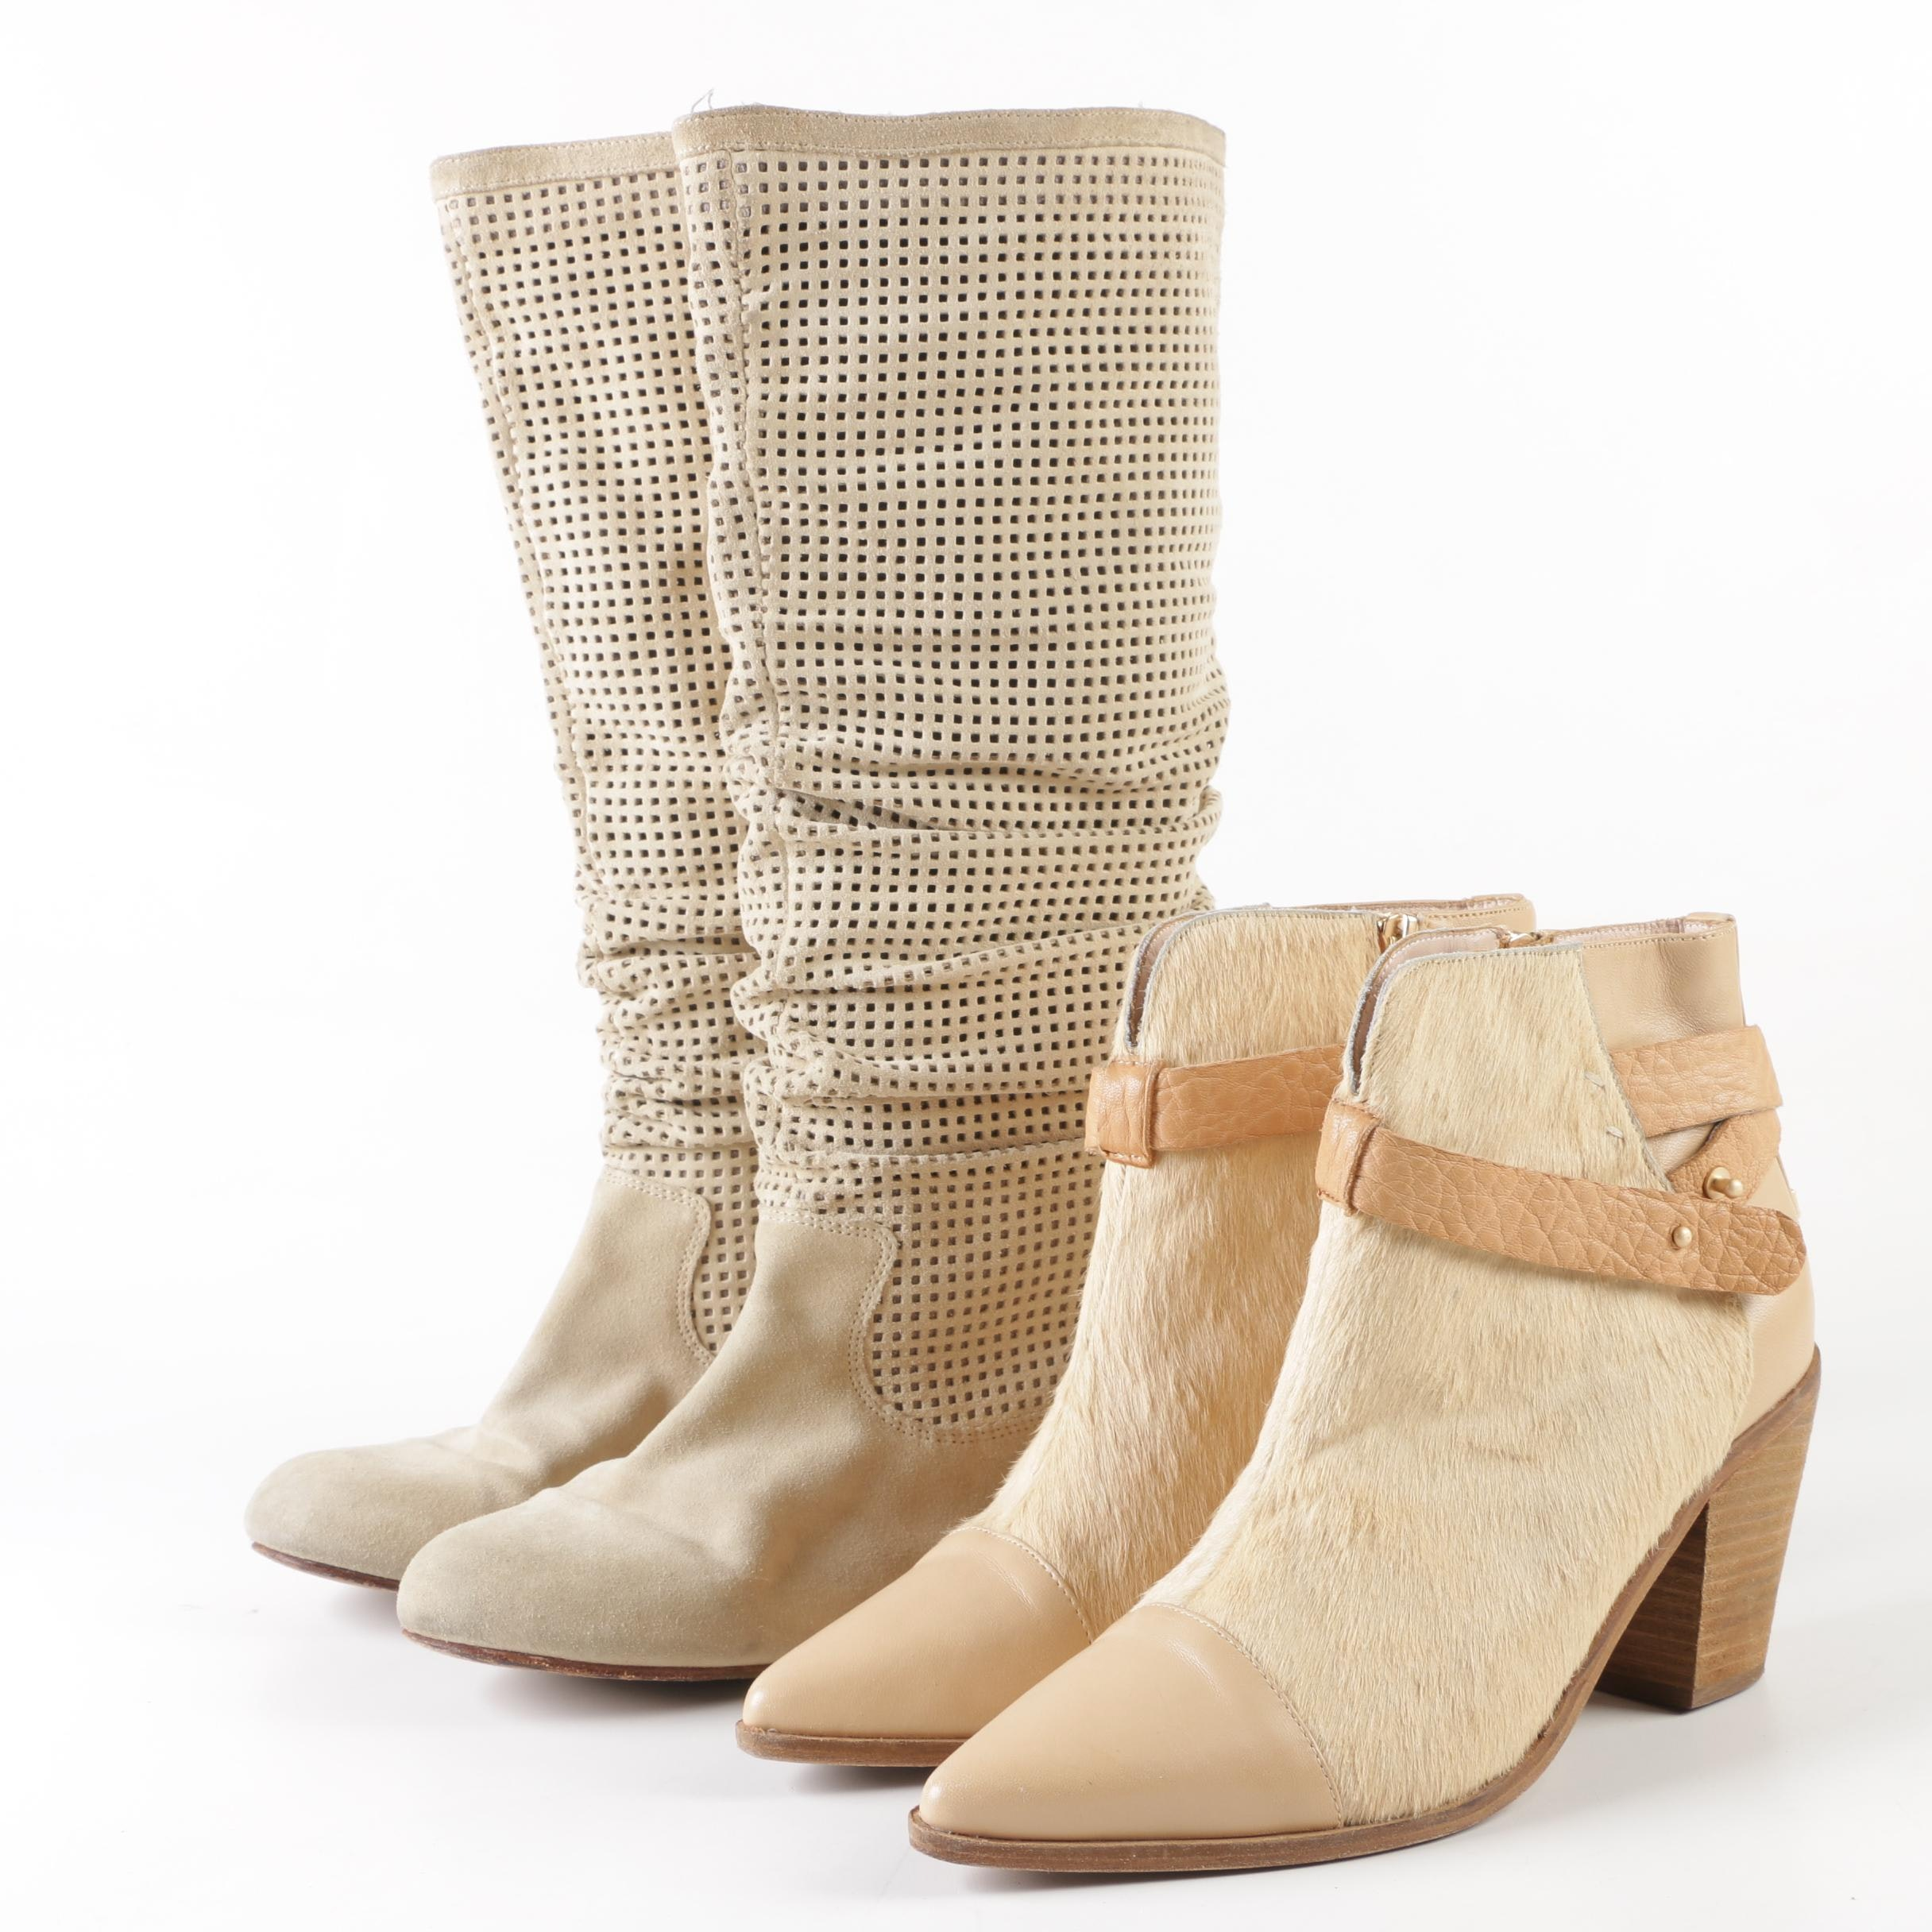 Australia Luxe Booties and Ugg Perforated Boots